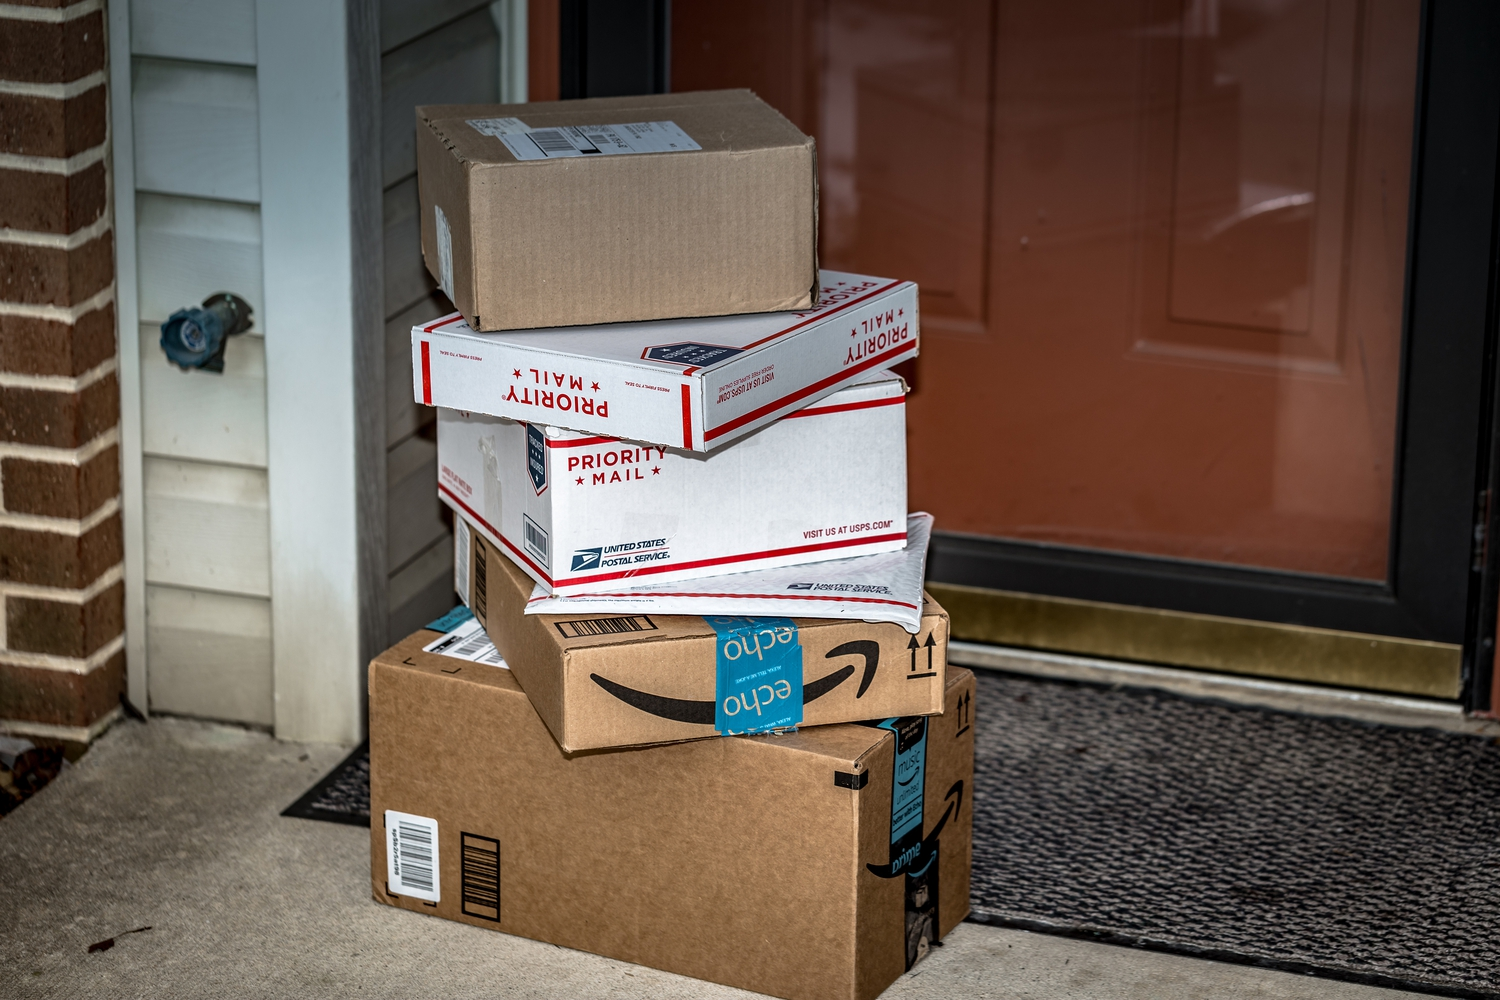 bigstock-Two-Amazon-Prime-Delivery-Brow-220201204.jpg